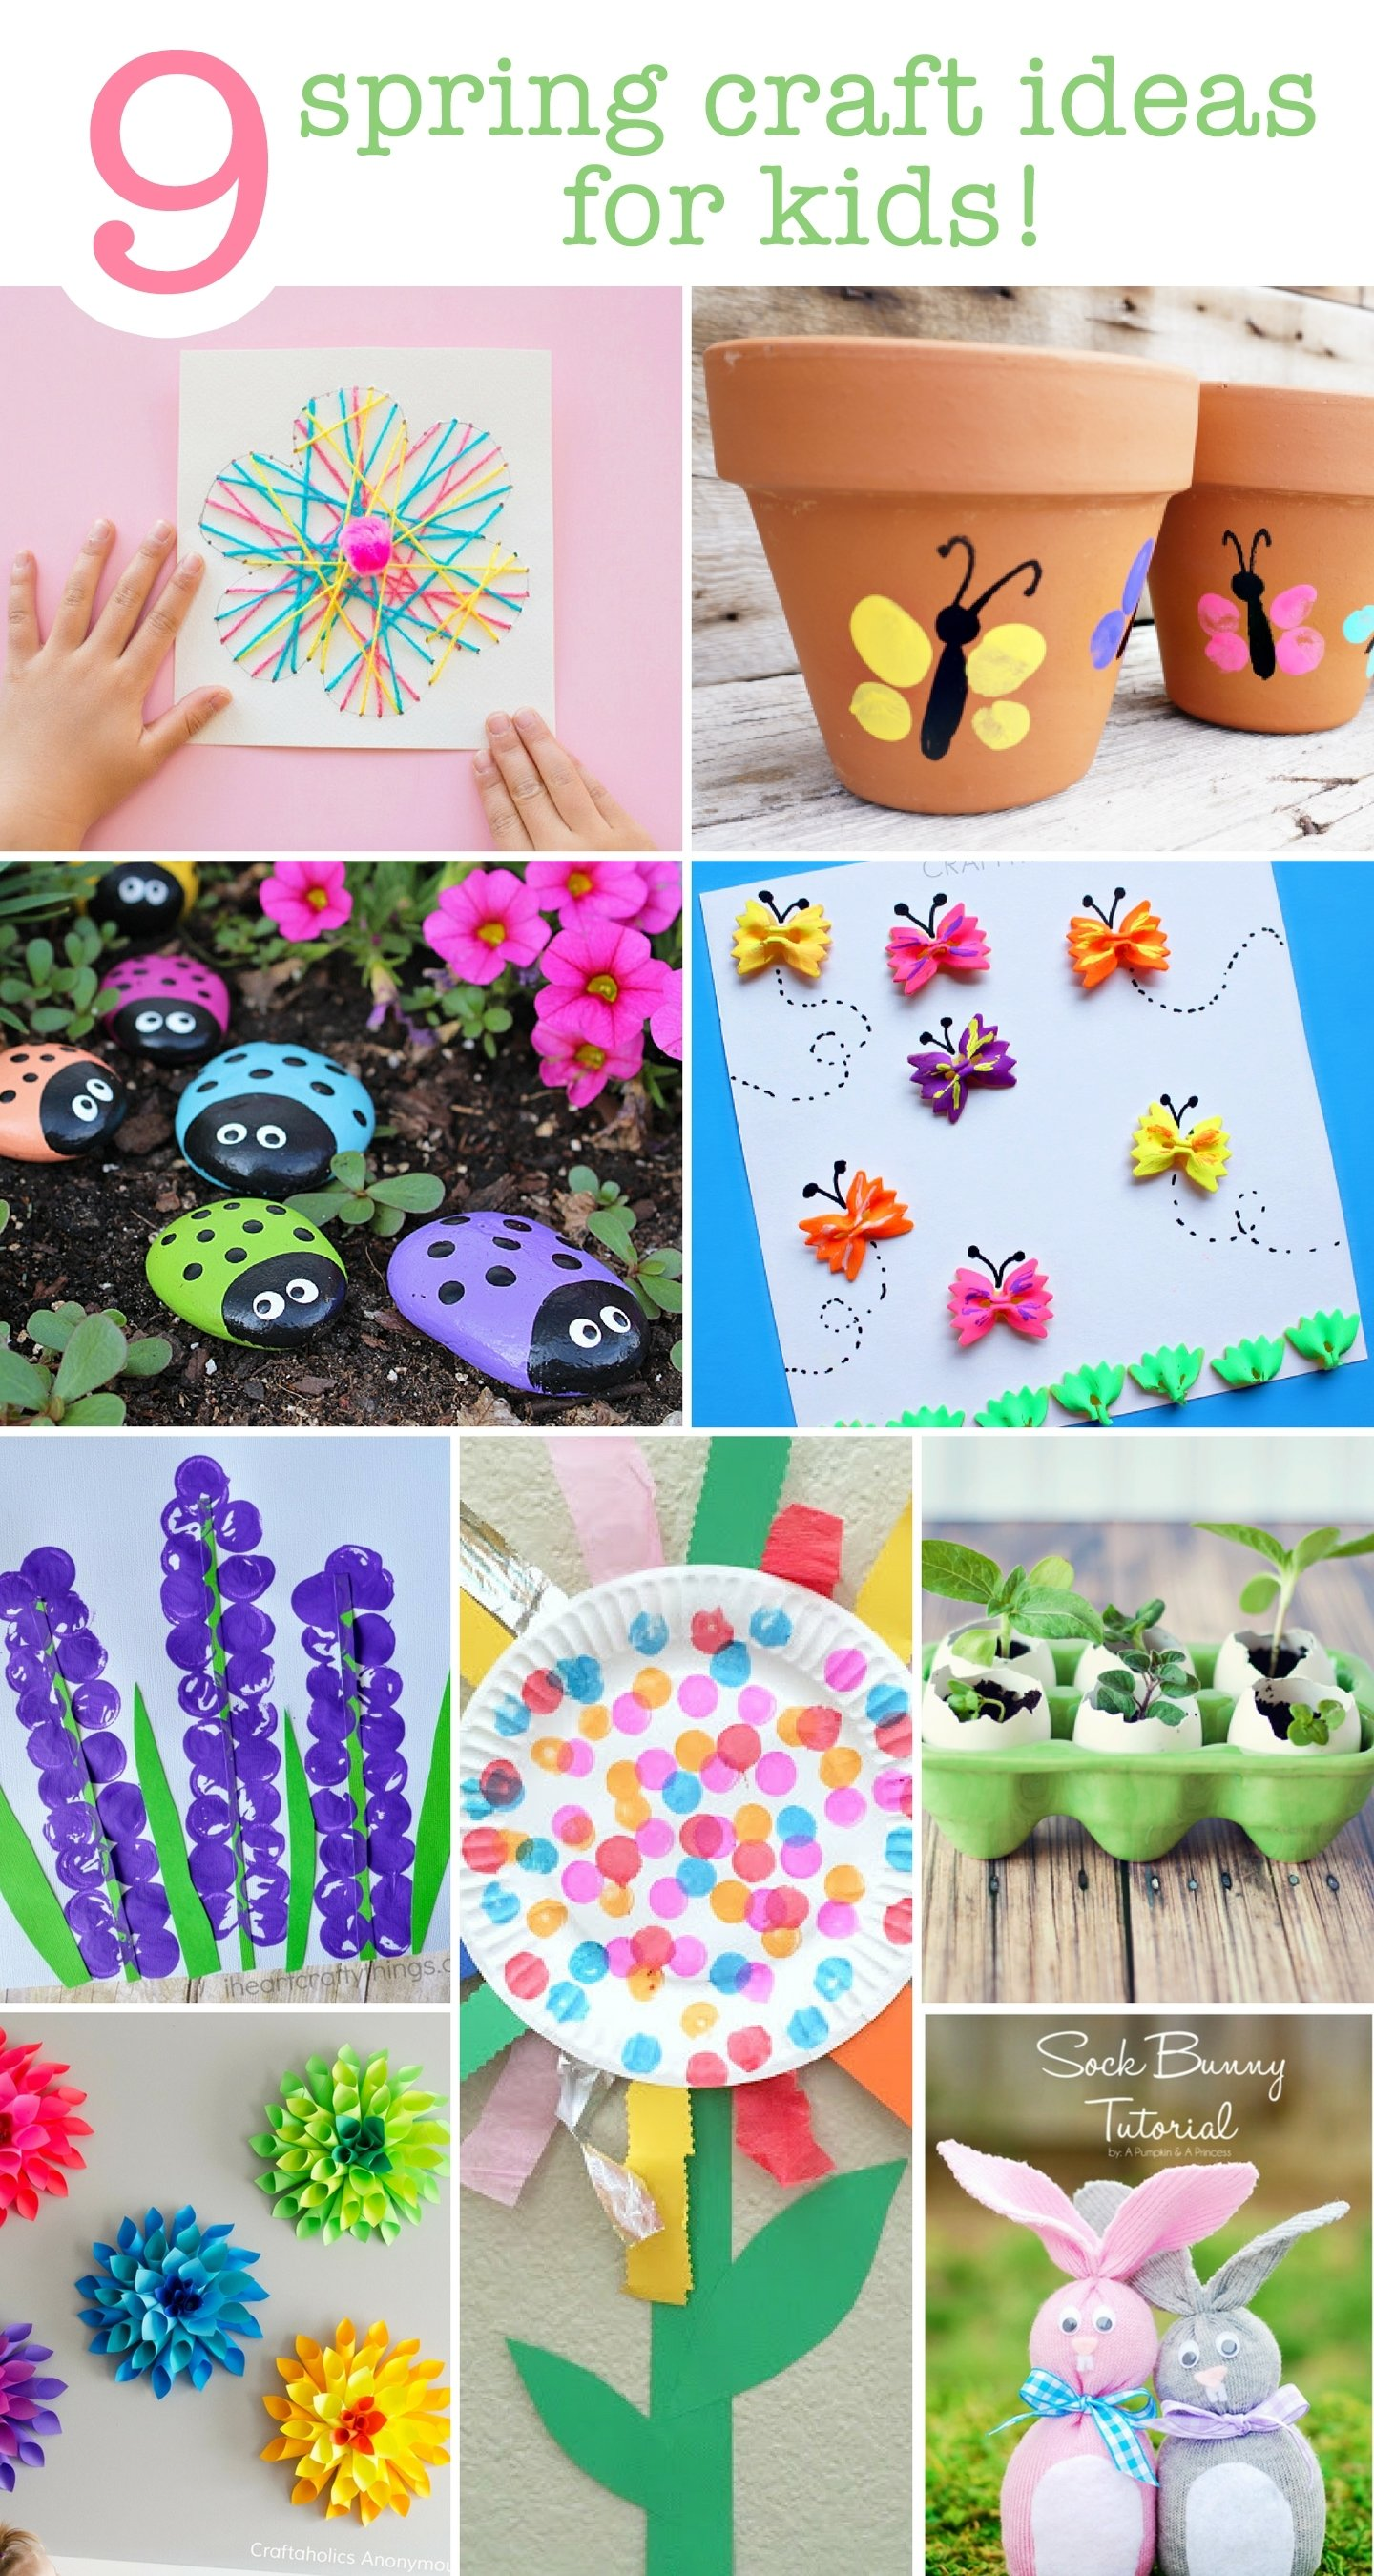 10 Fabulous Spring Craft Ideas For Kids 9 spring craft ideas for the kids save this list 2021